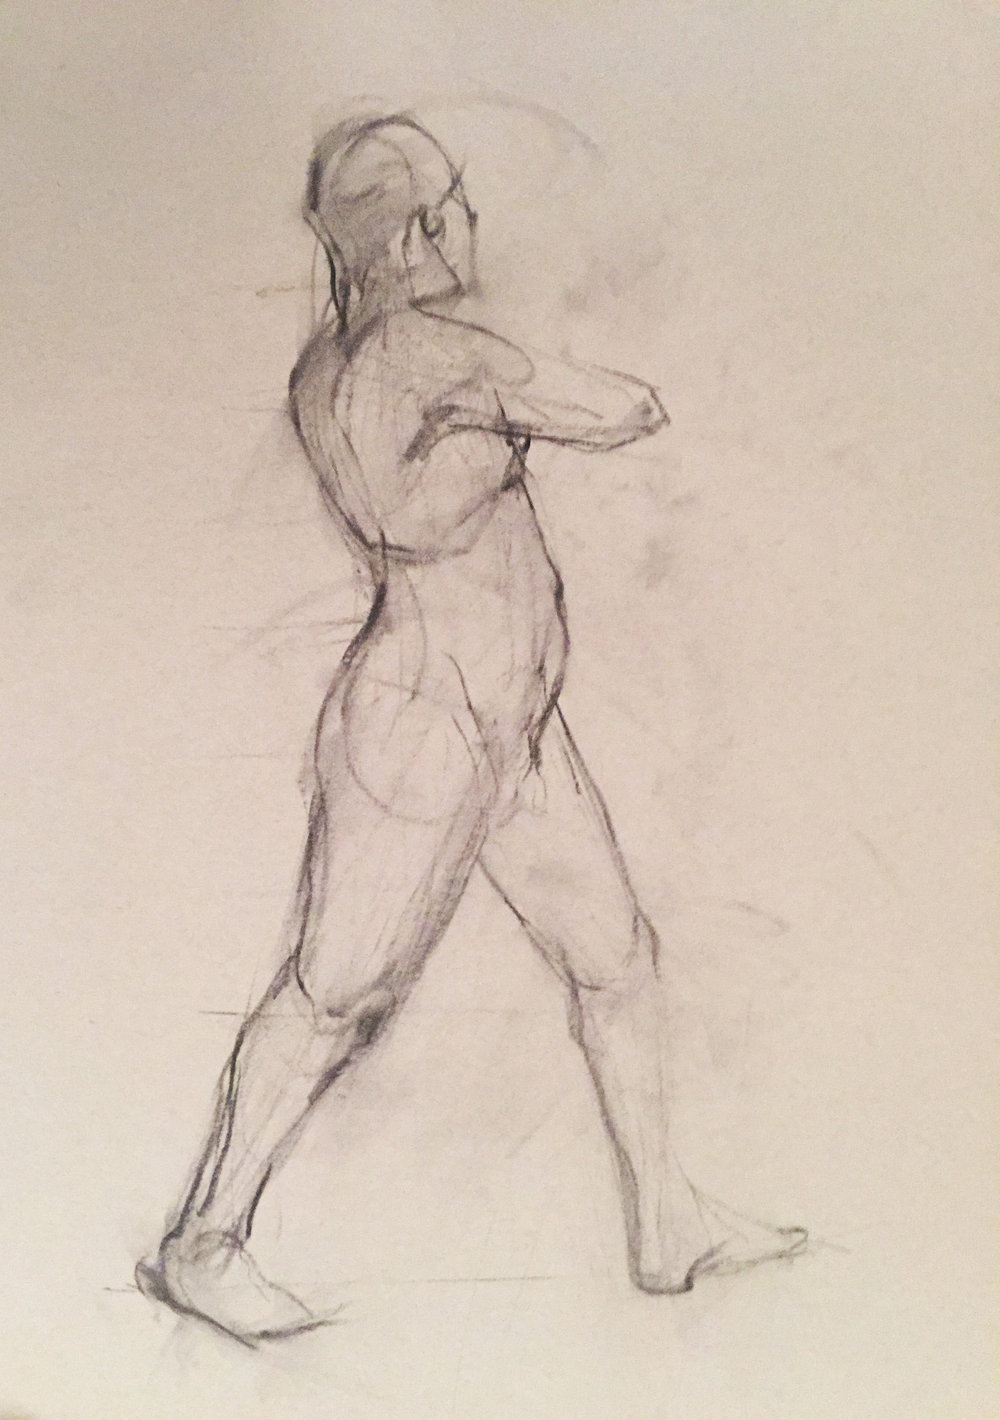 LIFE DRAWINGS - *Updated Weekly*